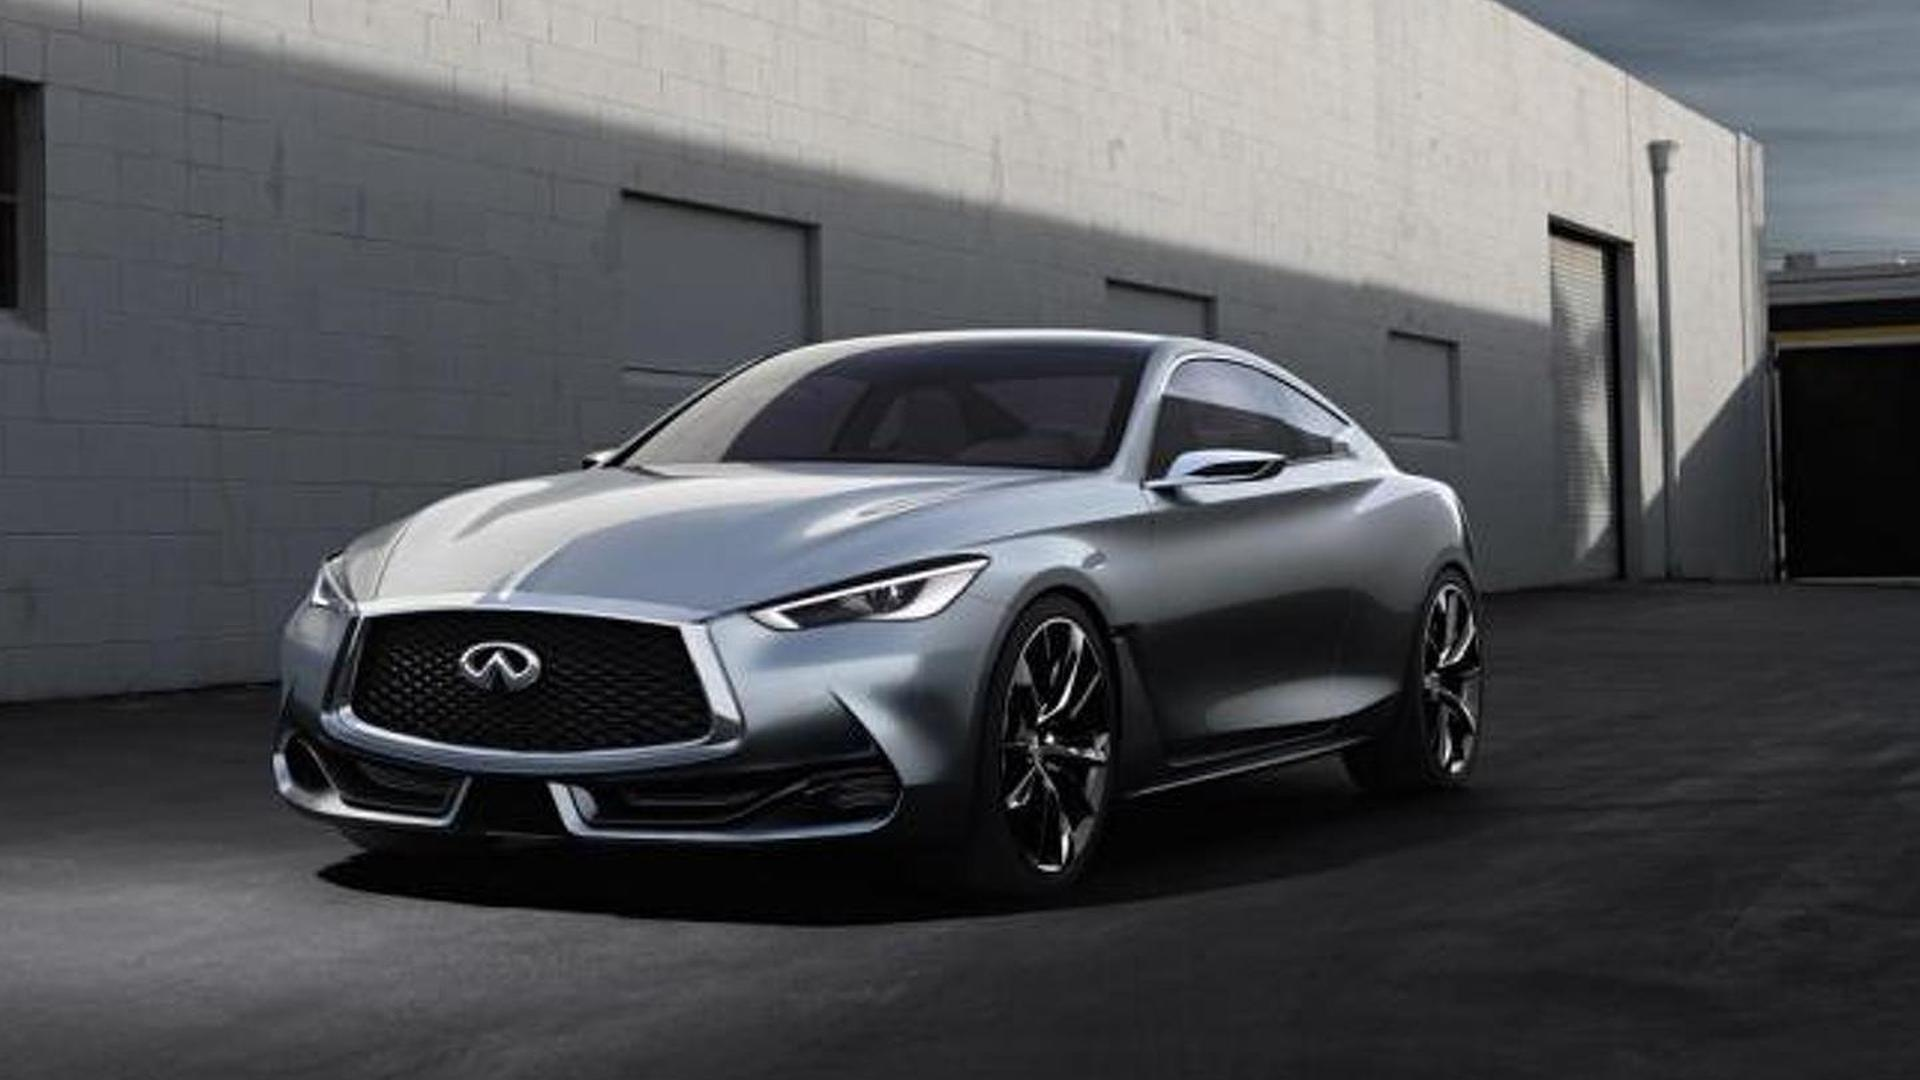 Infiniti Q60 concept new images released